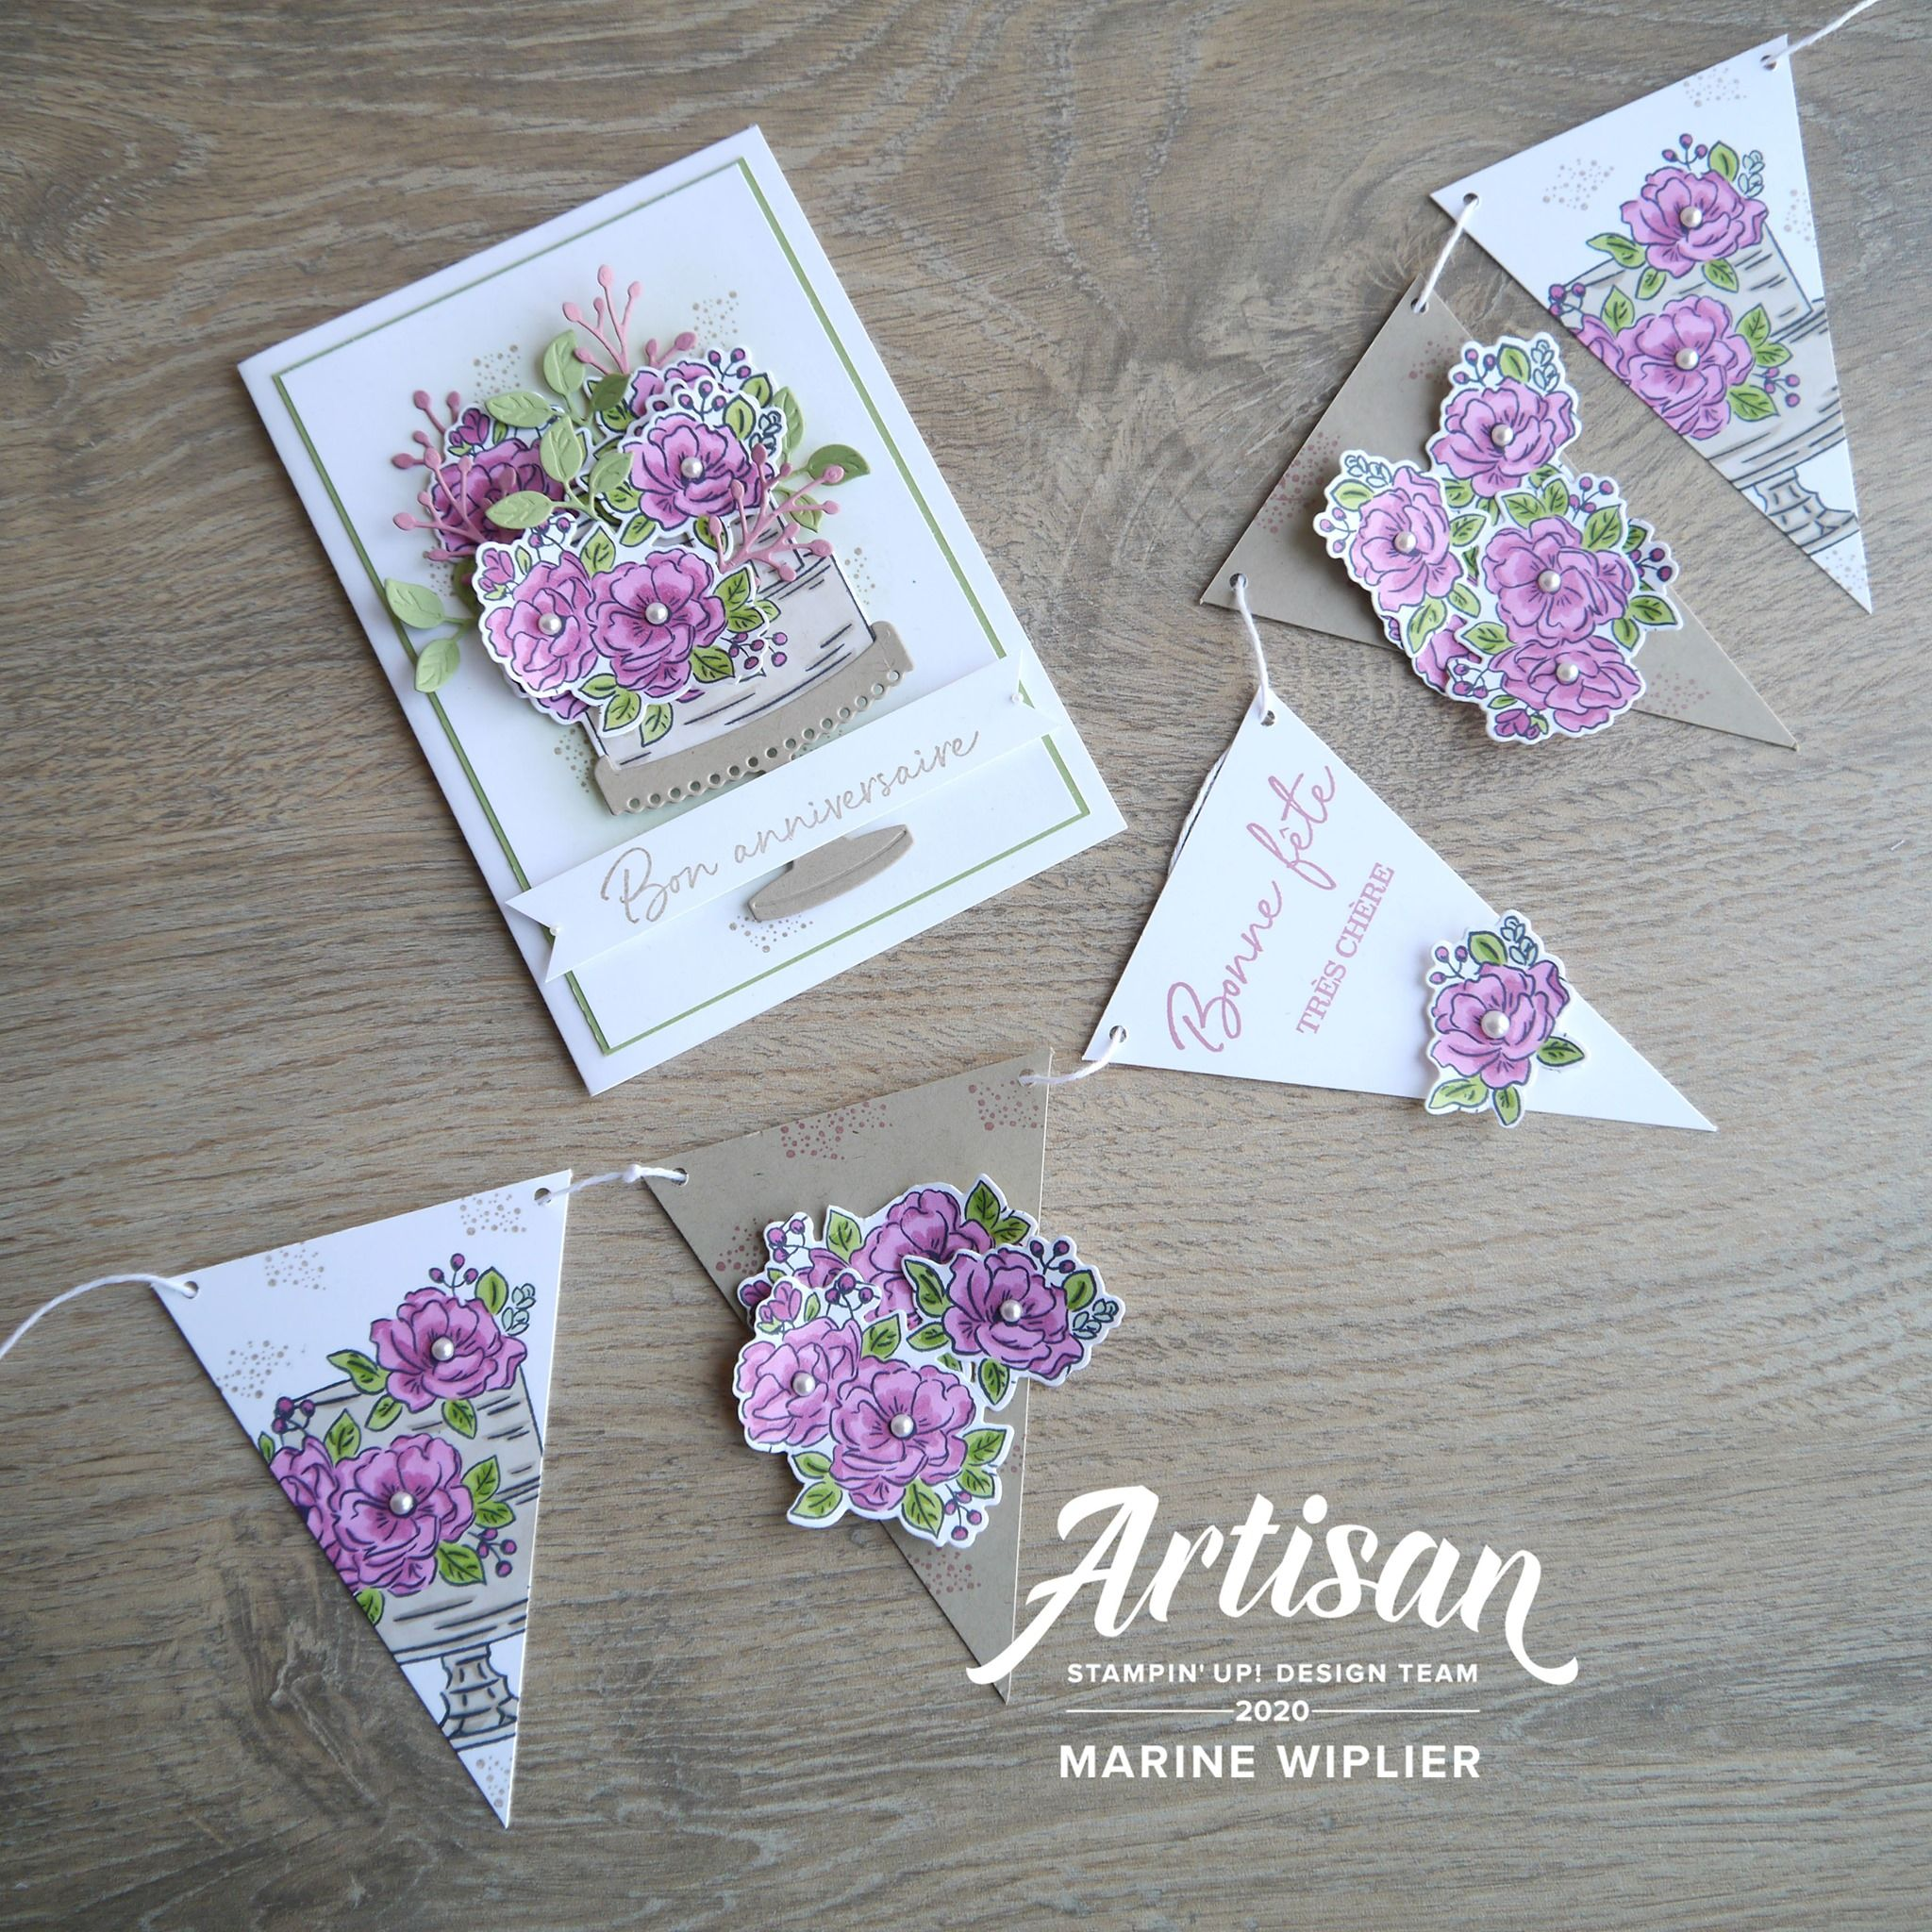 Stampin'Up! Artisan Design Team Blog Hop Coordination